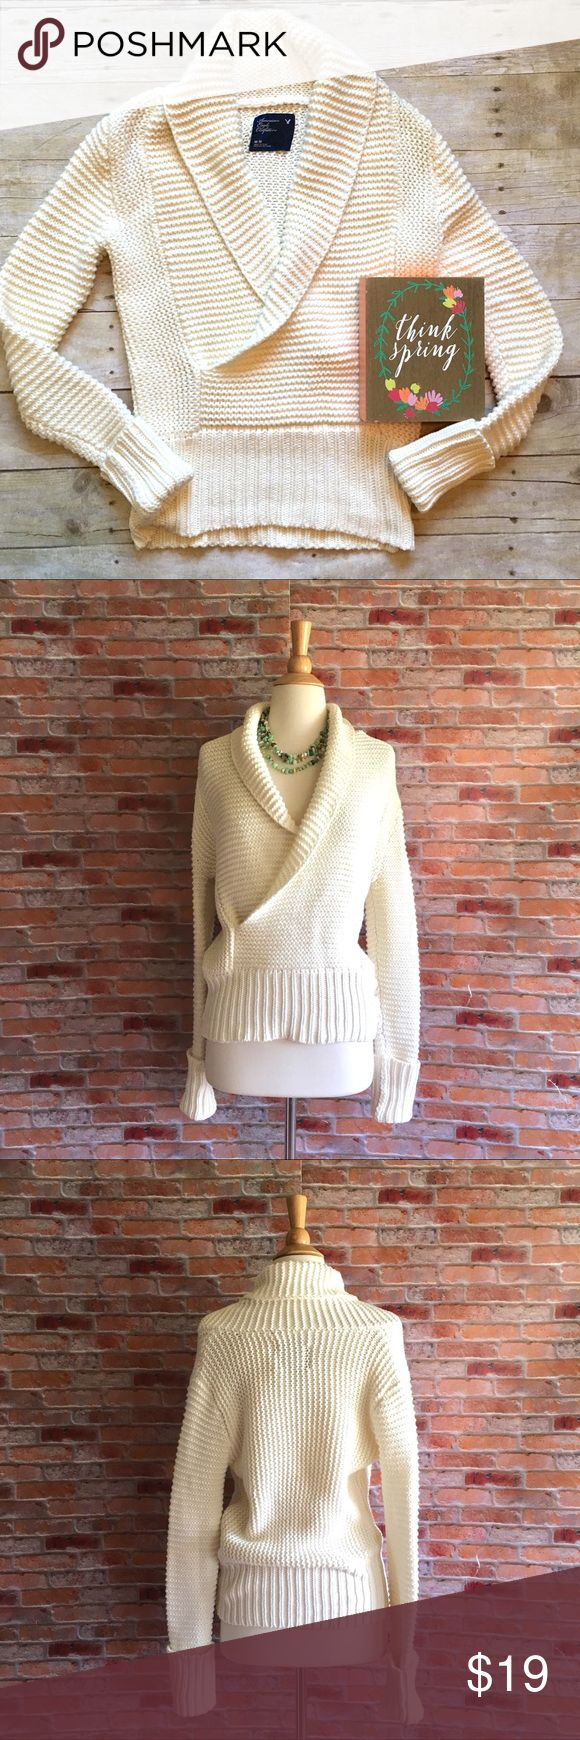 """American Eagle Ivory shawl collar sweater Lovely thick knit ivory sweater featuring a shawl collar and ribbed cuffs and hem. In excellent condition. 25""""L. 63/27 cotton, arcylic. Size medium. American Eagle Outfitters Sweaters"""